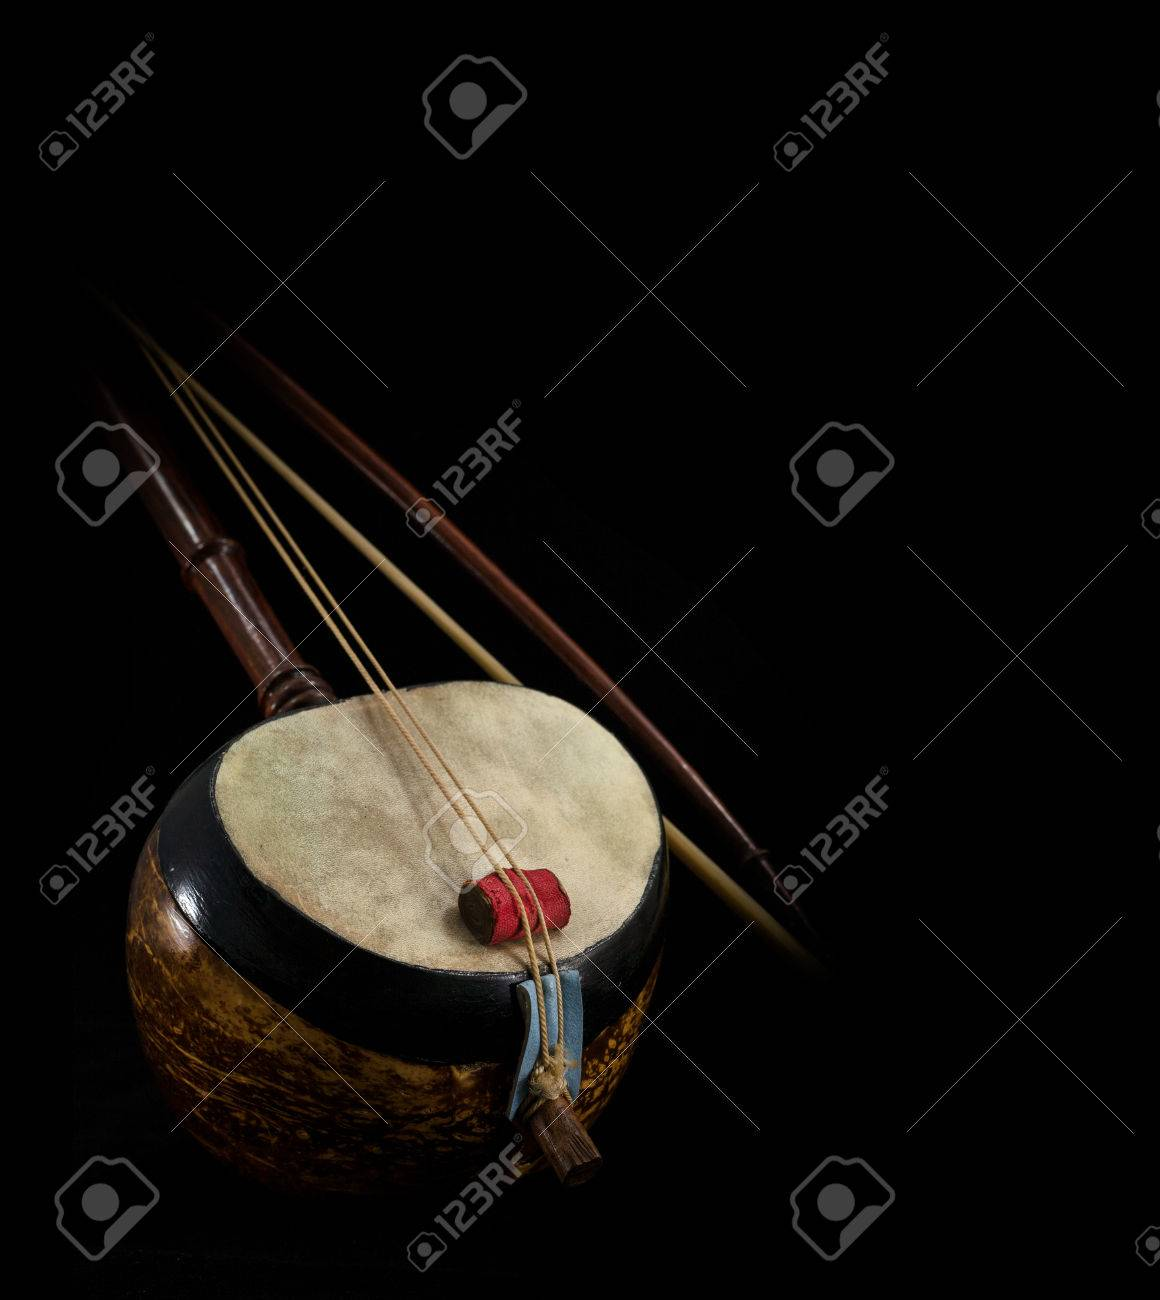 A part of Saw, Thai fiddle bass sounded string music instrument